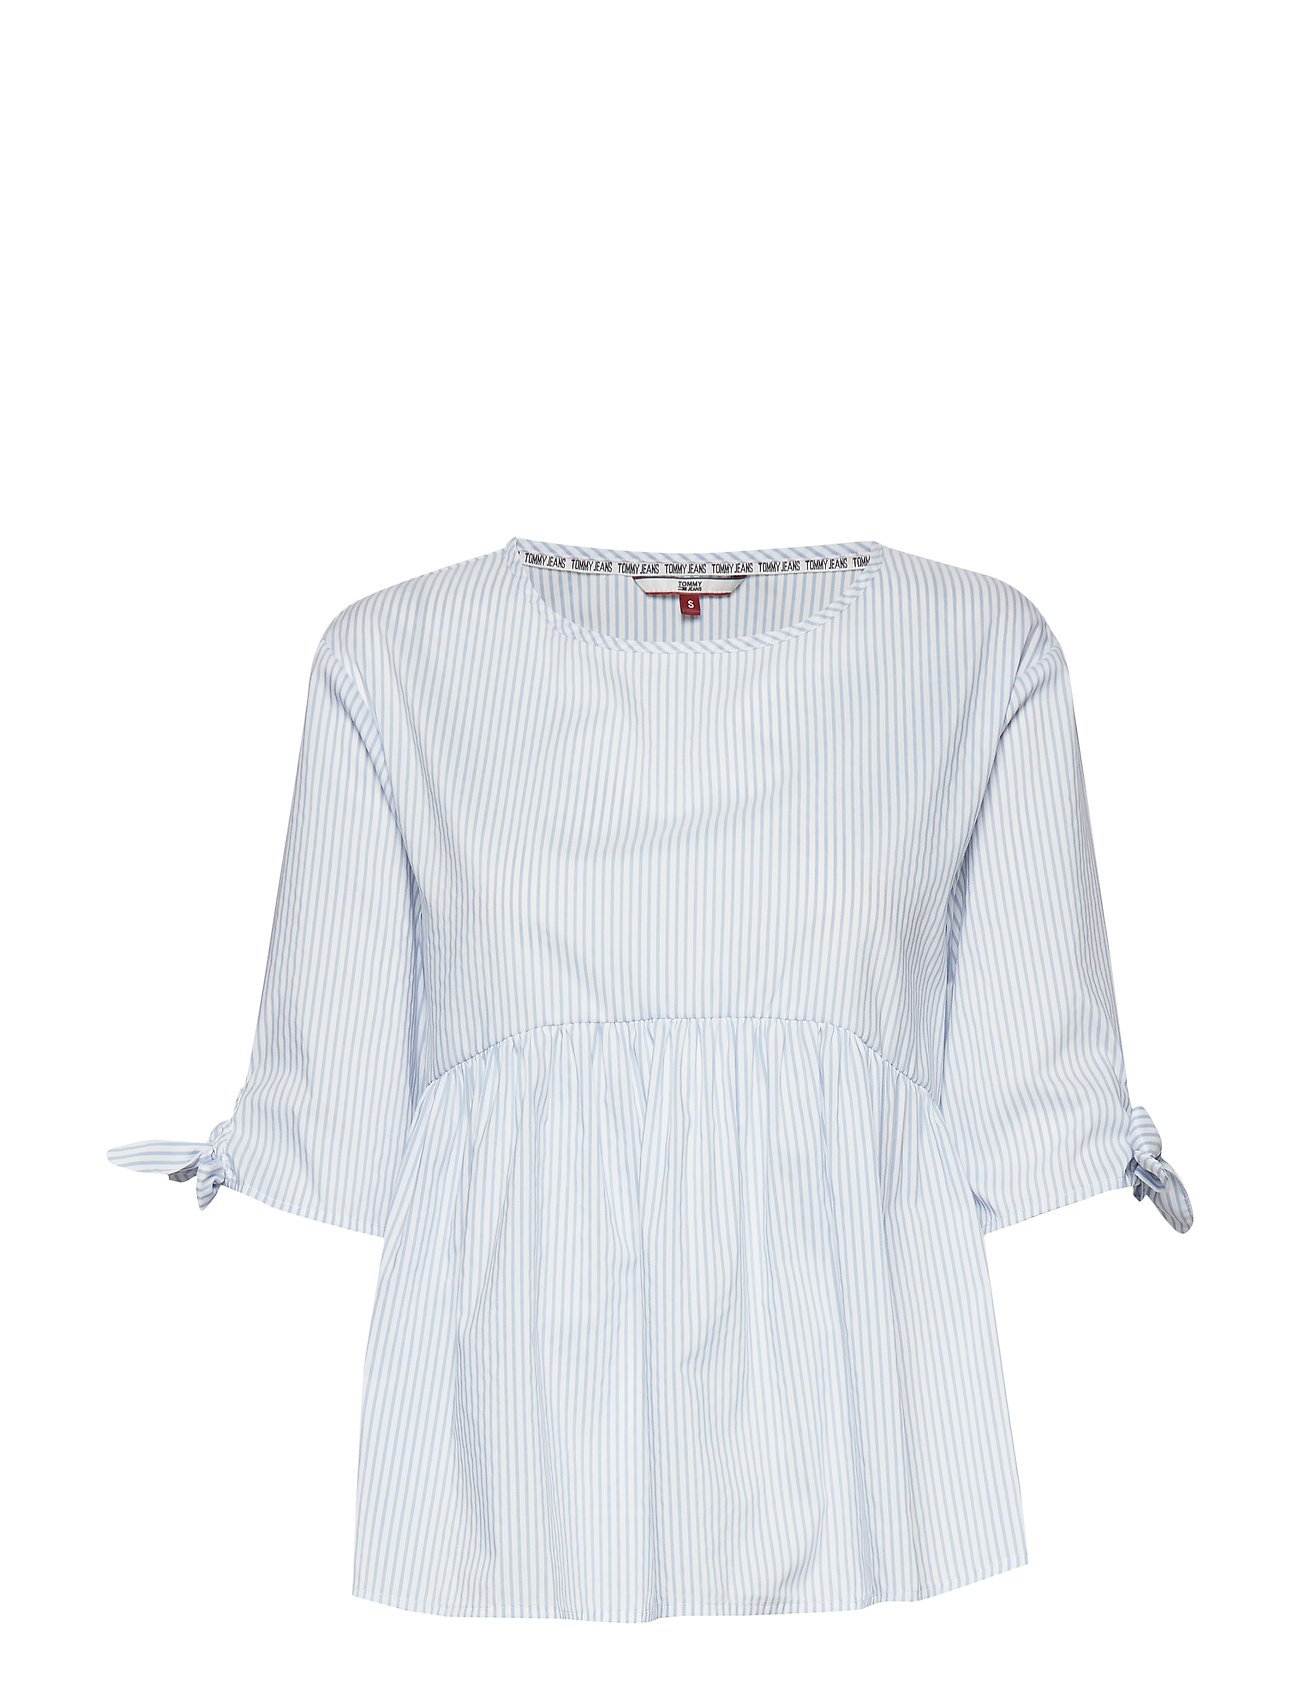 Tommy Jeans TJW SLEEVE BOW DETAIL BLOUSE - WHITE / MODERATE BLUE